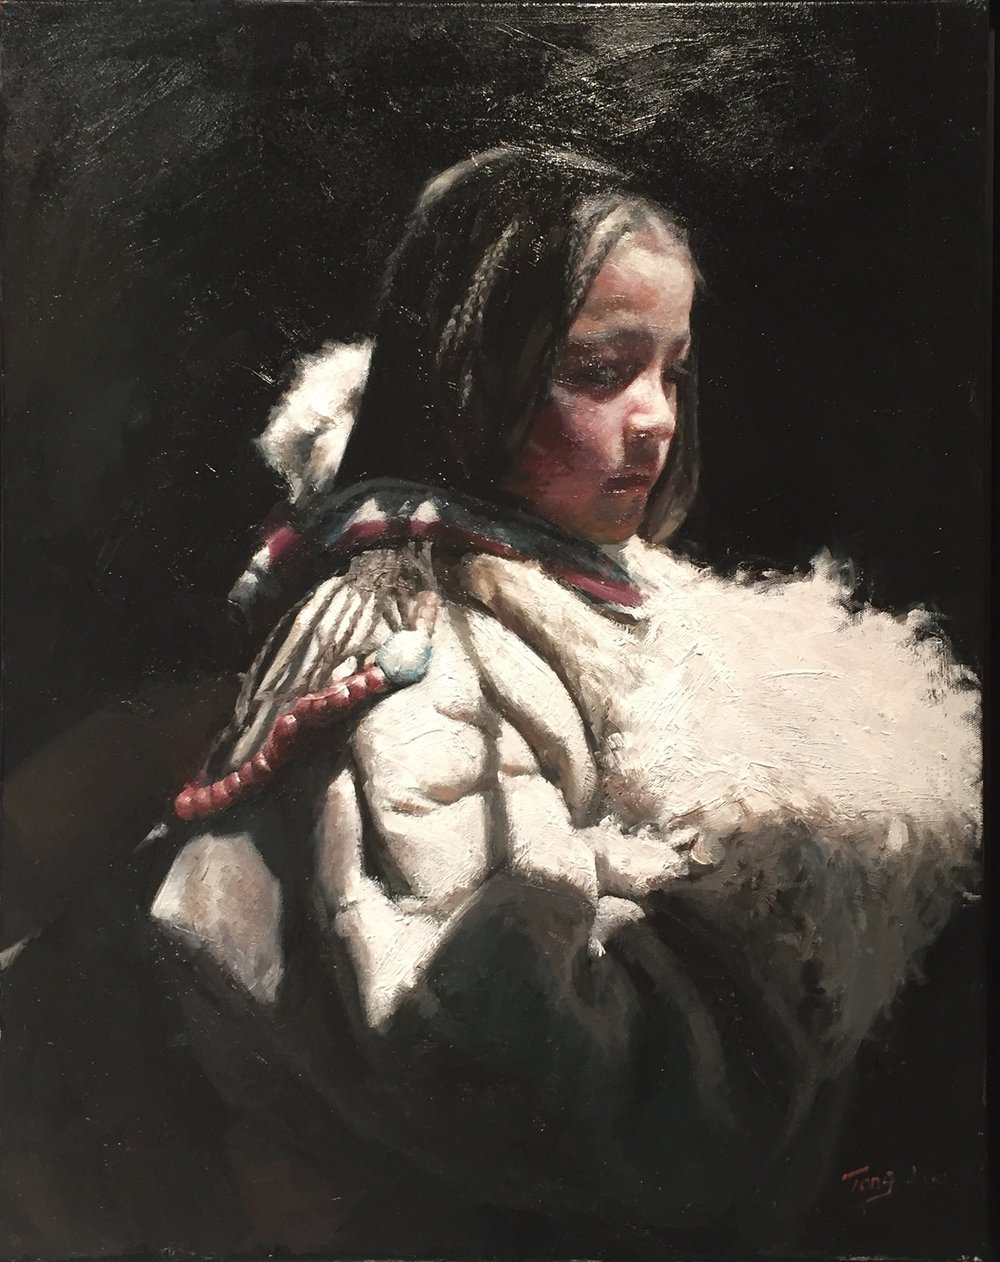 Nobleman's Daughter II, 2015, 28 x 22 inches, Oil on canvas